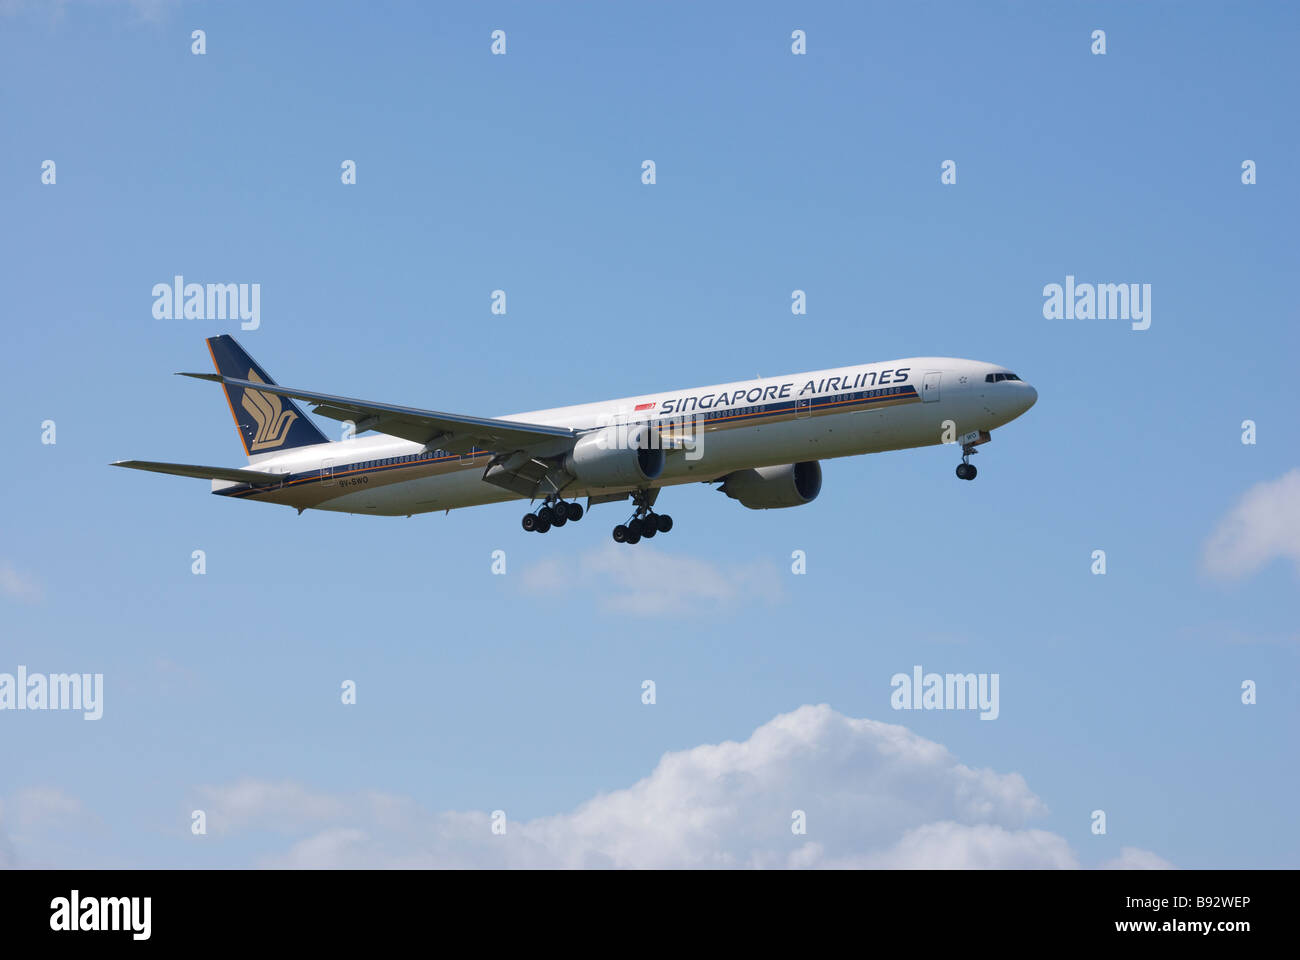 Boeing 777-312ER of Singapore Airlines on final approach for landing at Auckland International Airport, New Zealand. - Stock Image